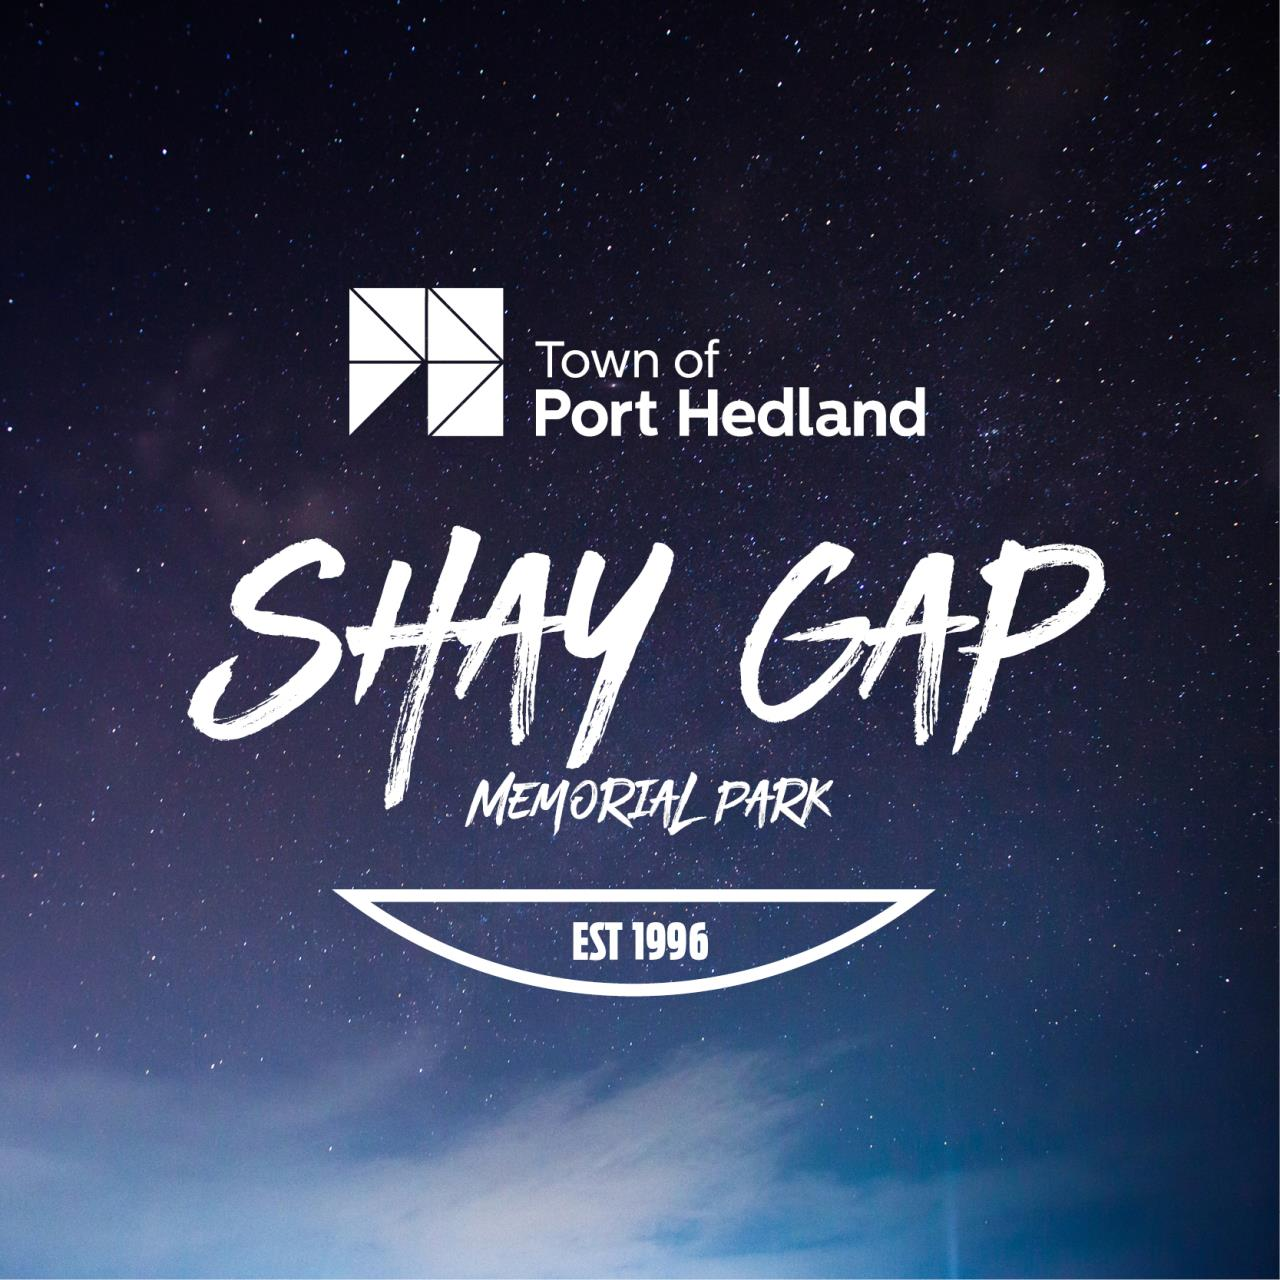 Official Reopening of the Shay Gap Memorial Park Playground